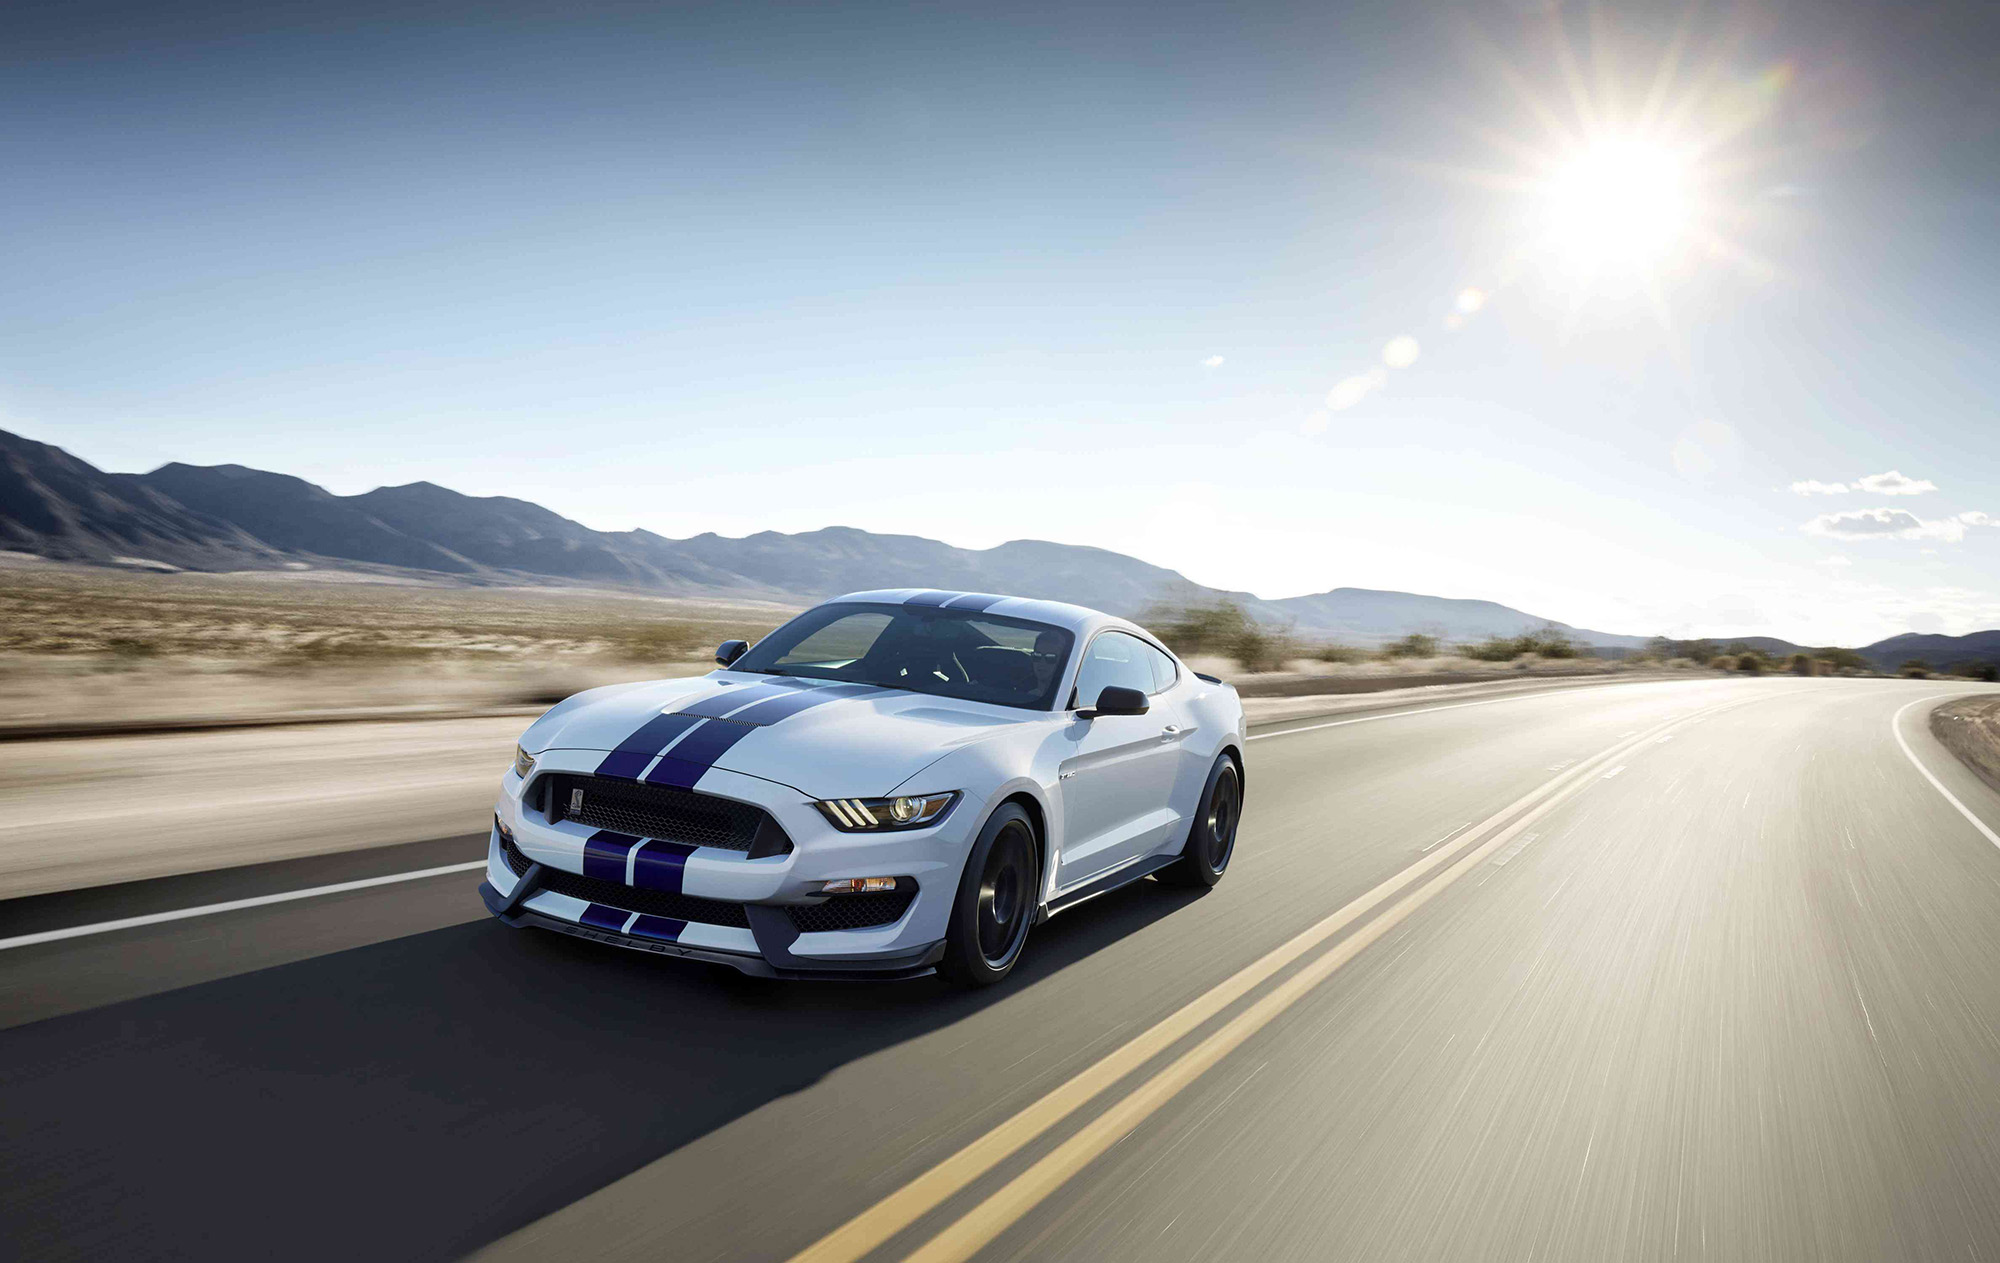 What Makes The New Ford Mustang Shelby GT350 So Good At The Track